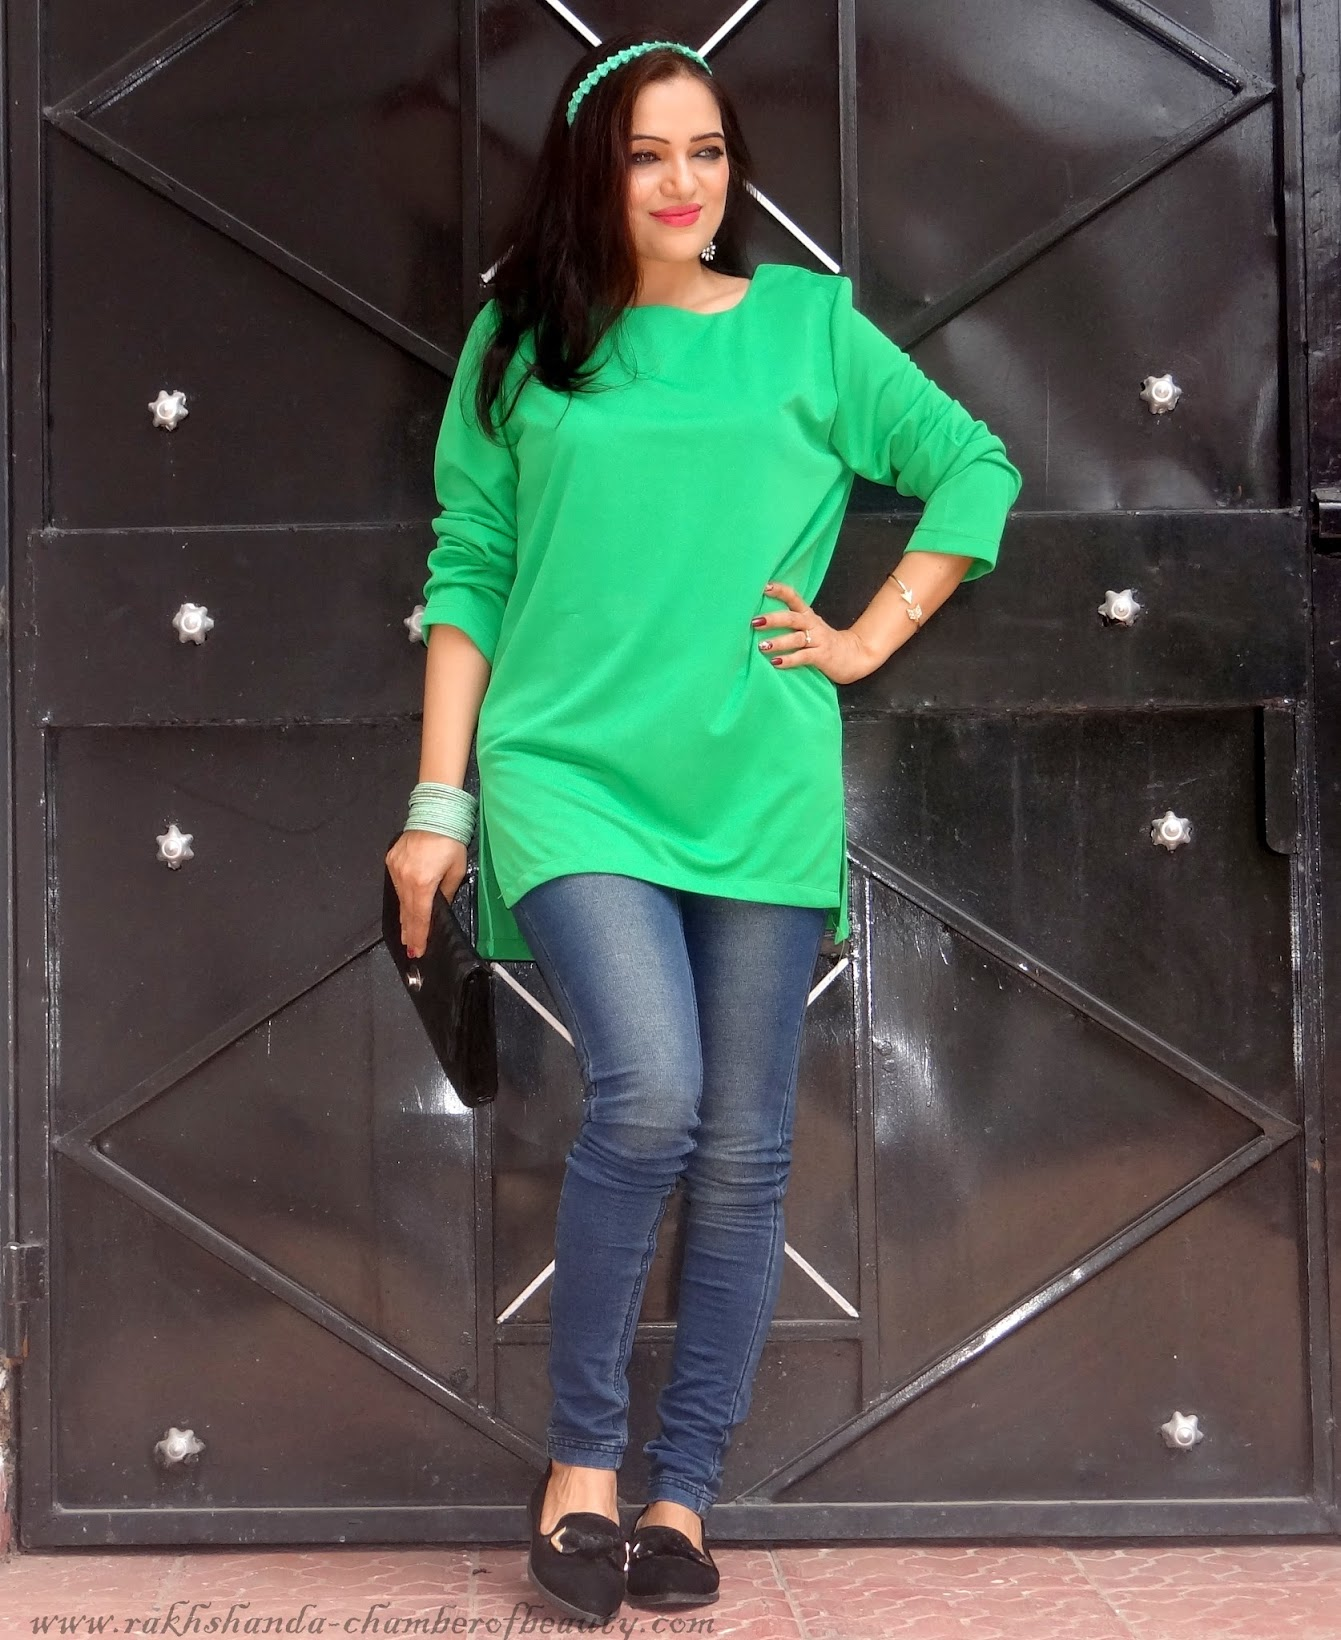 Green in one- OOTD, Zaful.com, Chamber of Beauty